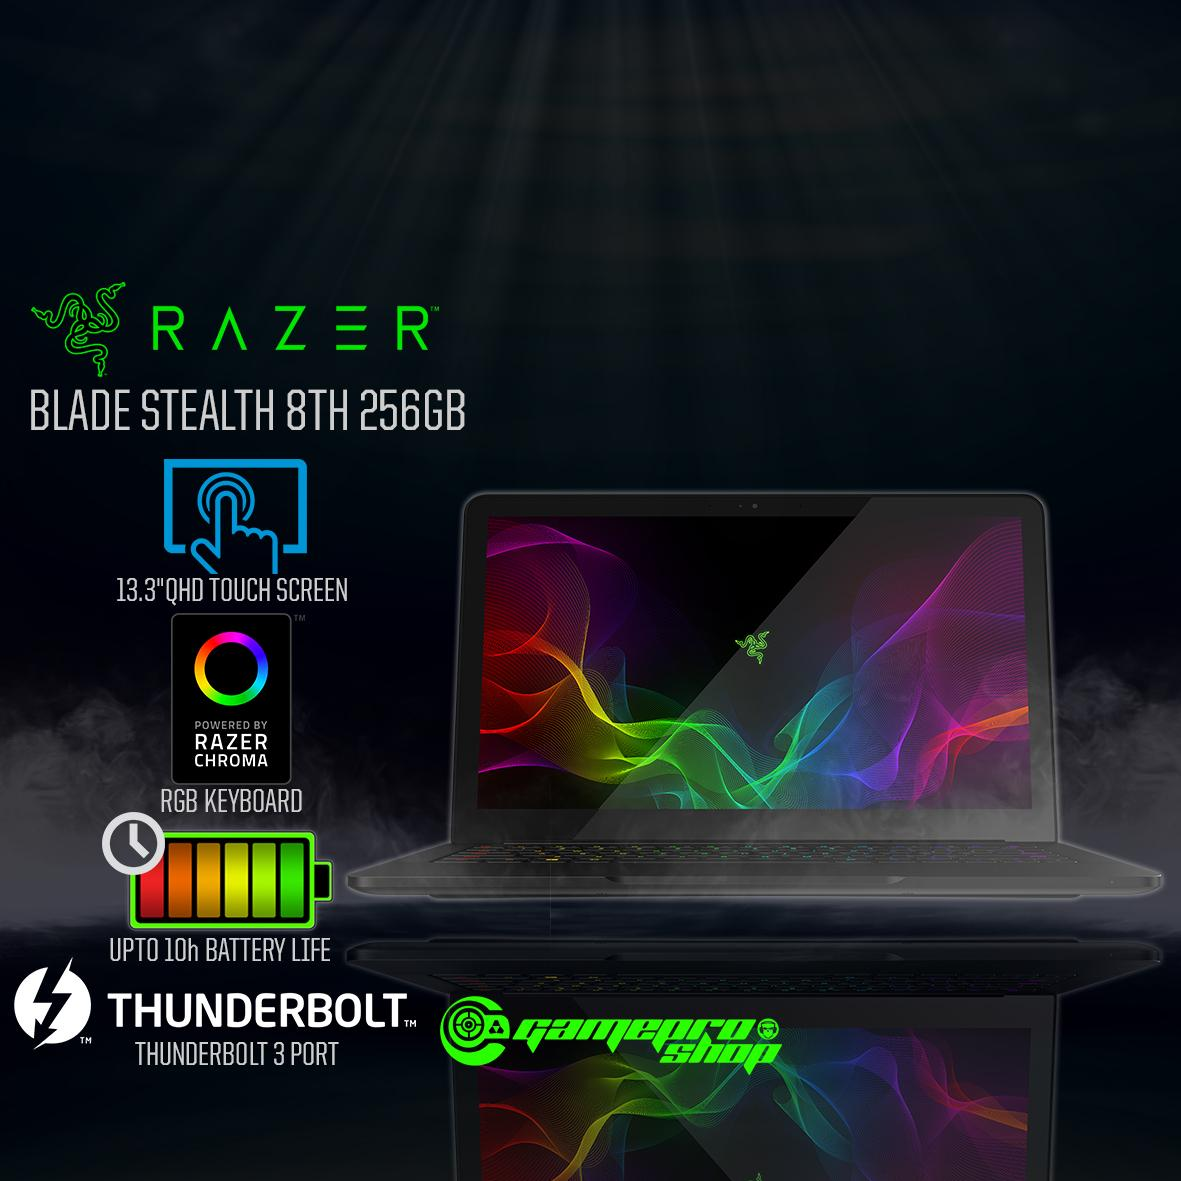 RAZER BLADE STEALTH 13.3″ with 8th Gen- (256GB / 512GB) *10.10 PROMO*